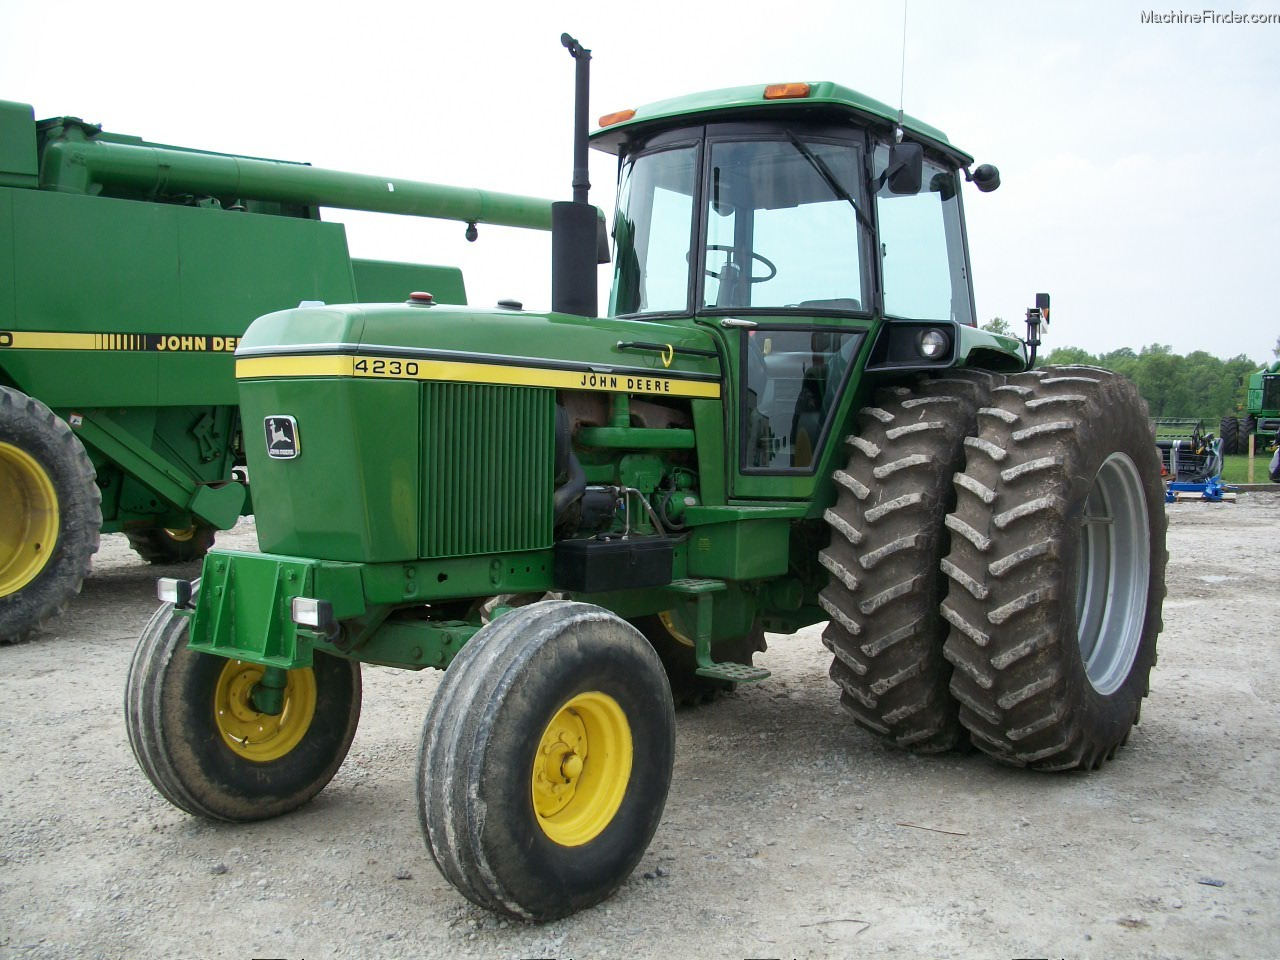 power seat wiring diagram with 1974 John Deere 4230 Tractor 2081904 on Seat Wiring Help 165545 moreover Electrical System also Scherer additionally Razore90scooterparts together with 2002 Chevy Tahoe Temperature Control Fuse Box Diagram.